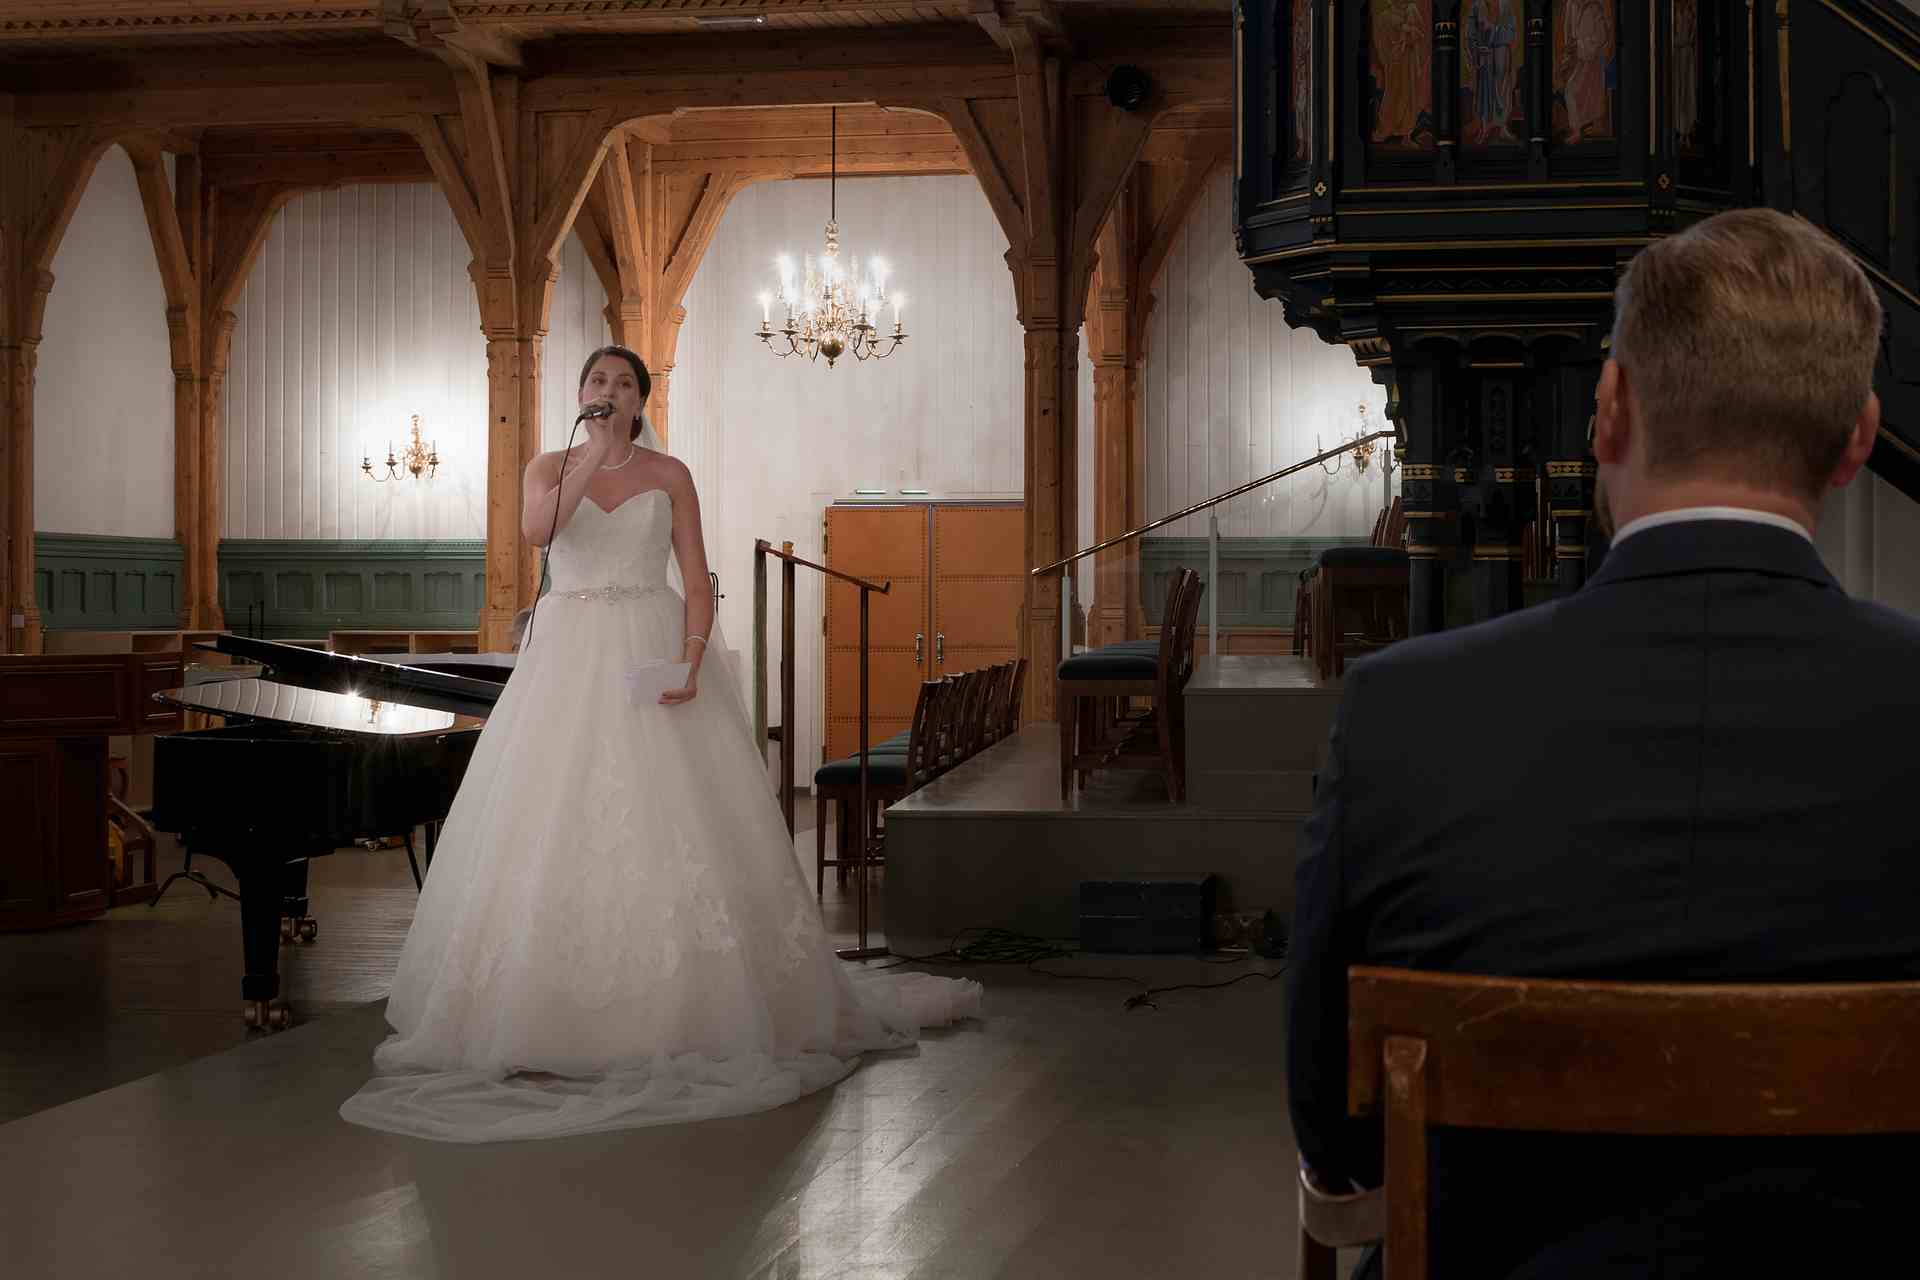 Photographer for a wedding in Kristiansand